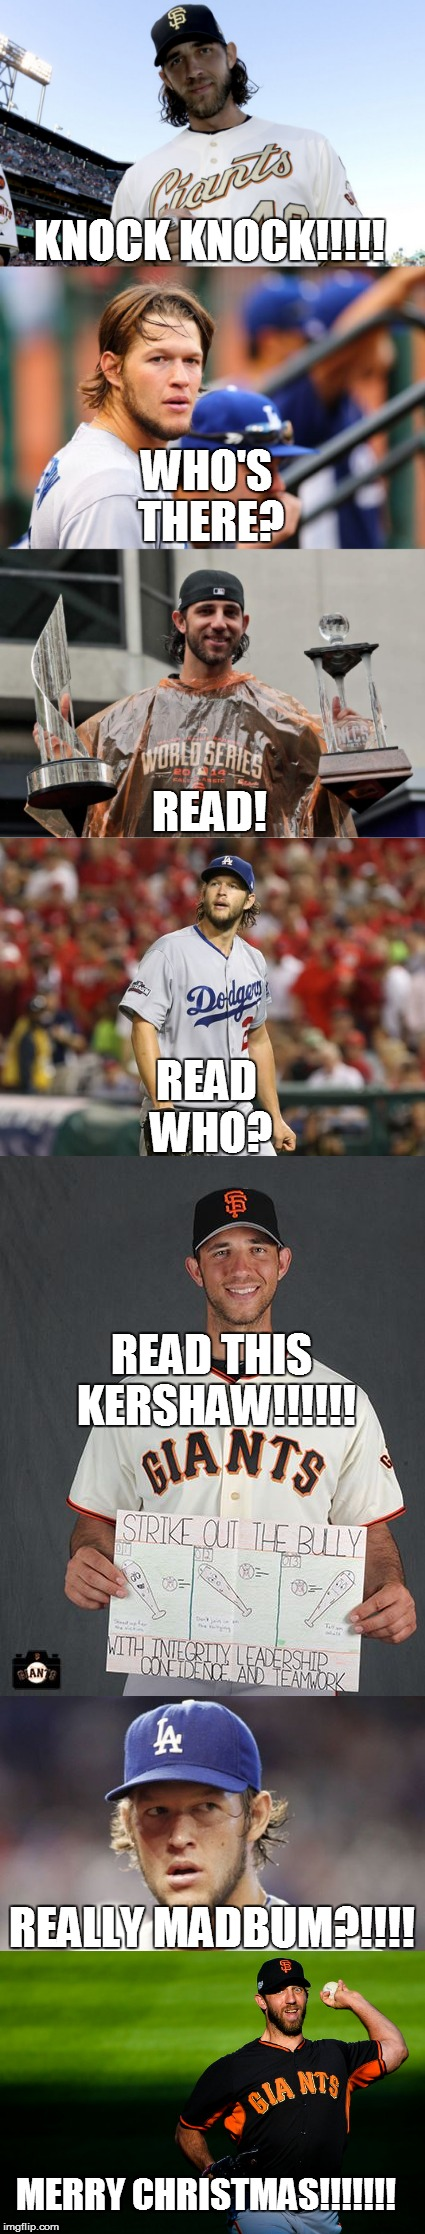 Kershaw and Bumgarner  | KNOCK KNOCK!!!!! WHO'S THERE? READ! READ WHO? READ THIS KERSHAW!!!!!! REALLY MADBUM?!!!! MERRY CHRISTMAS!!!!!!! | image tagged in claytonkershaw,madisonbumgarner,mlb baseball,san francisco giants,los angeles dodgers | made w/ Imgflip meme maker